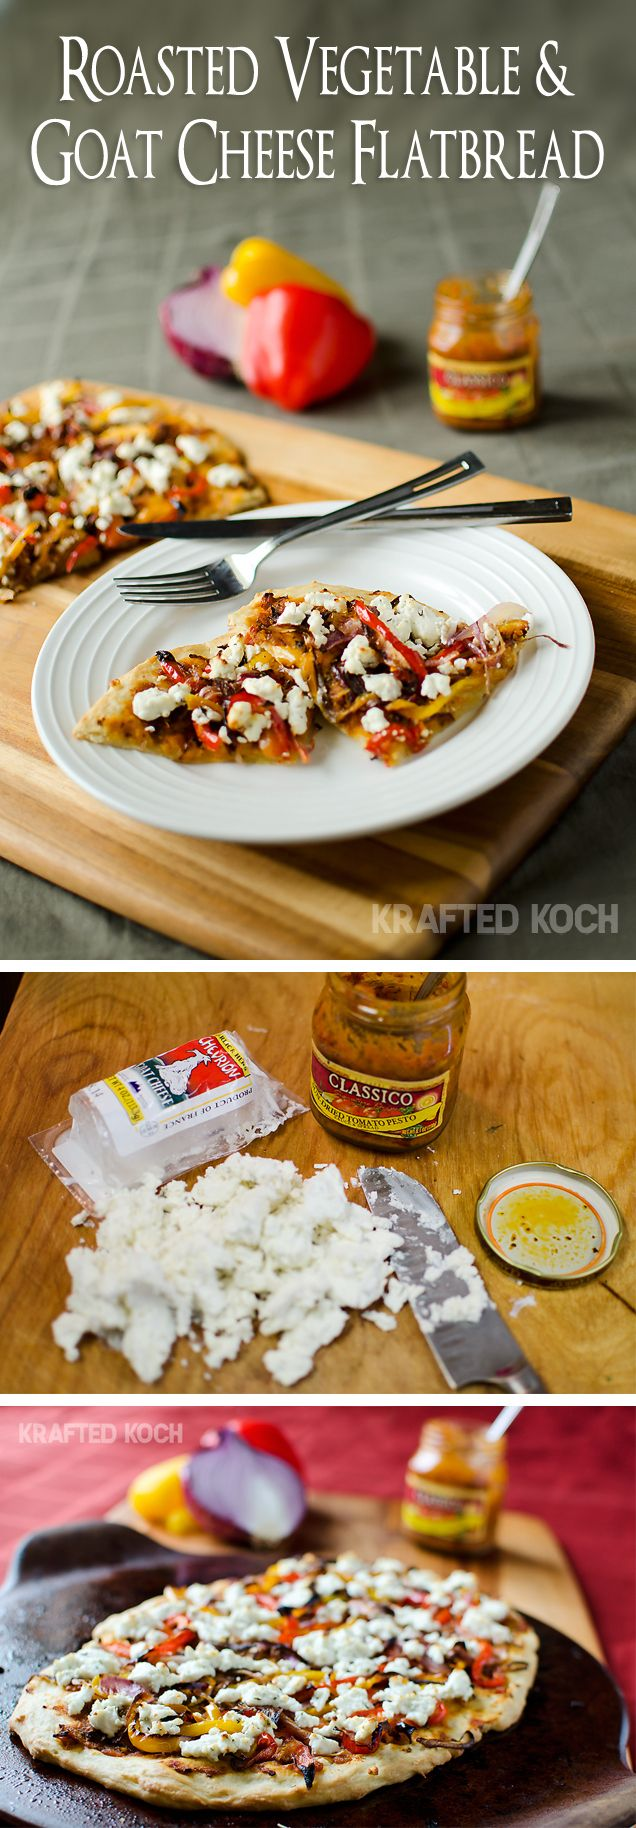 Roasted Vegetable and Goat Cheese Flatbread